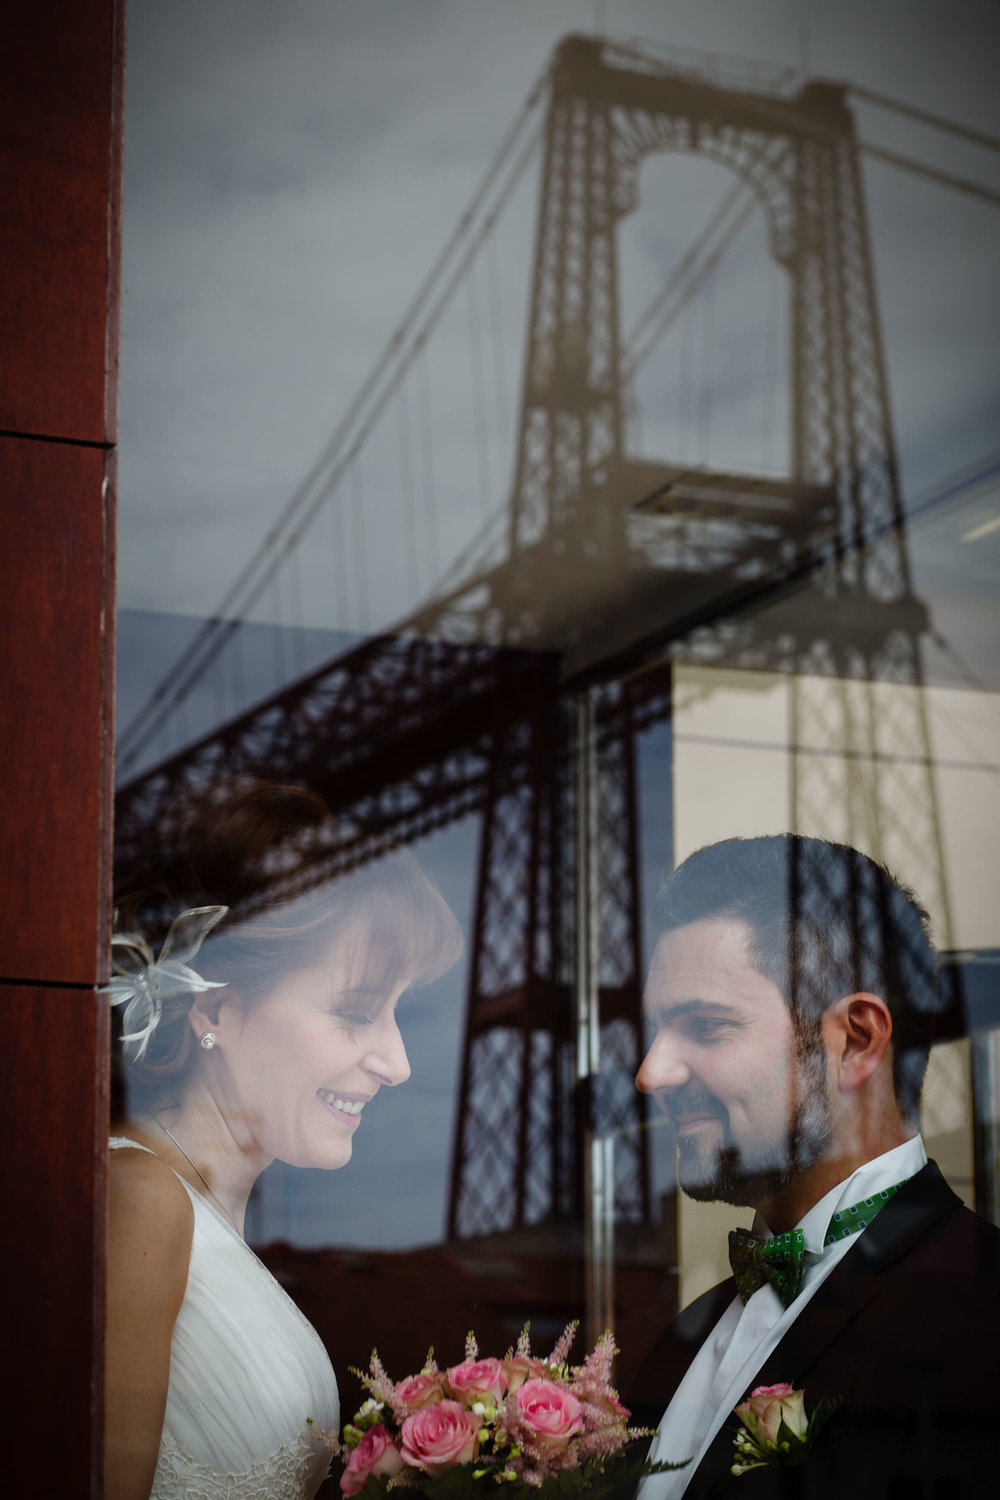 Engagement photography in Portugalete, Basque Country, Spain - James Sturcke  Photographer | sturcke.org_003.jpg